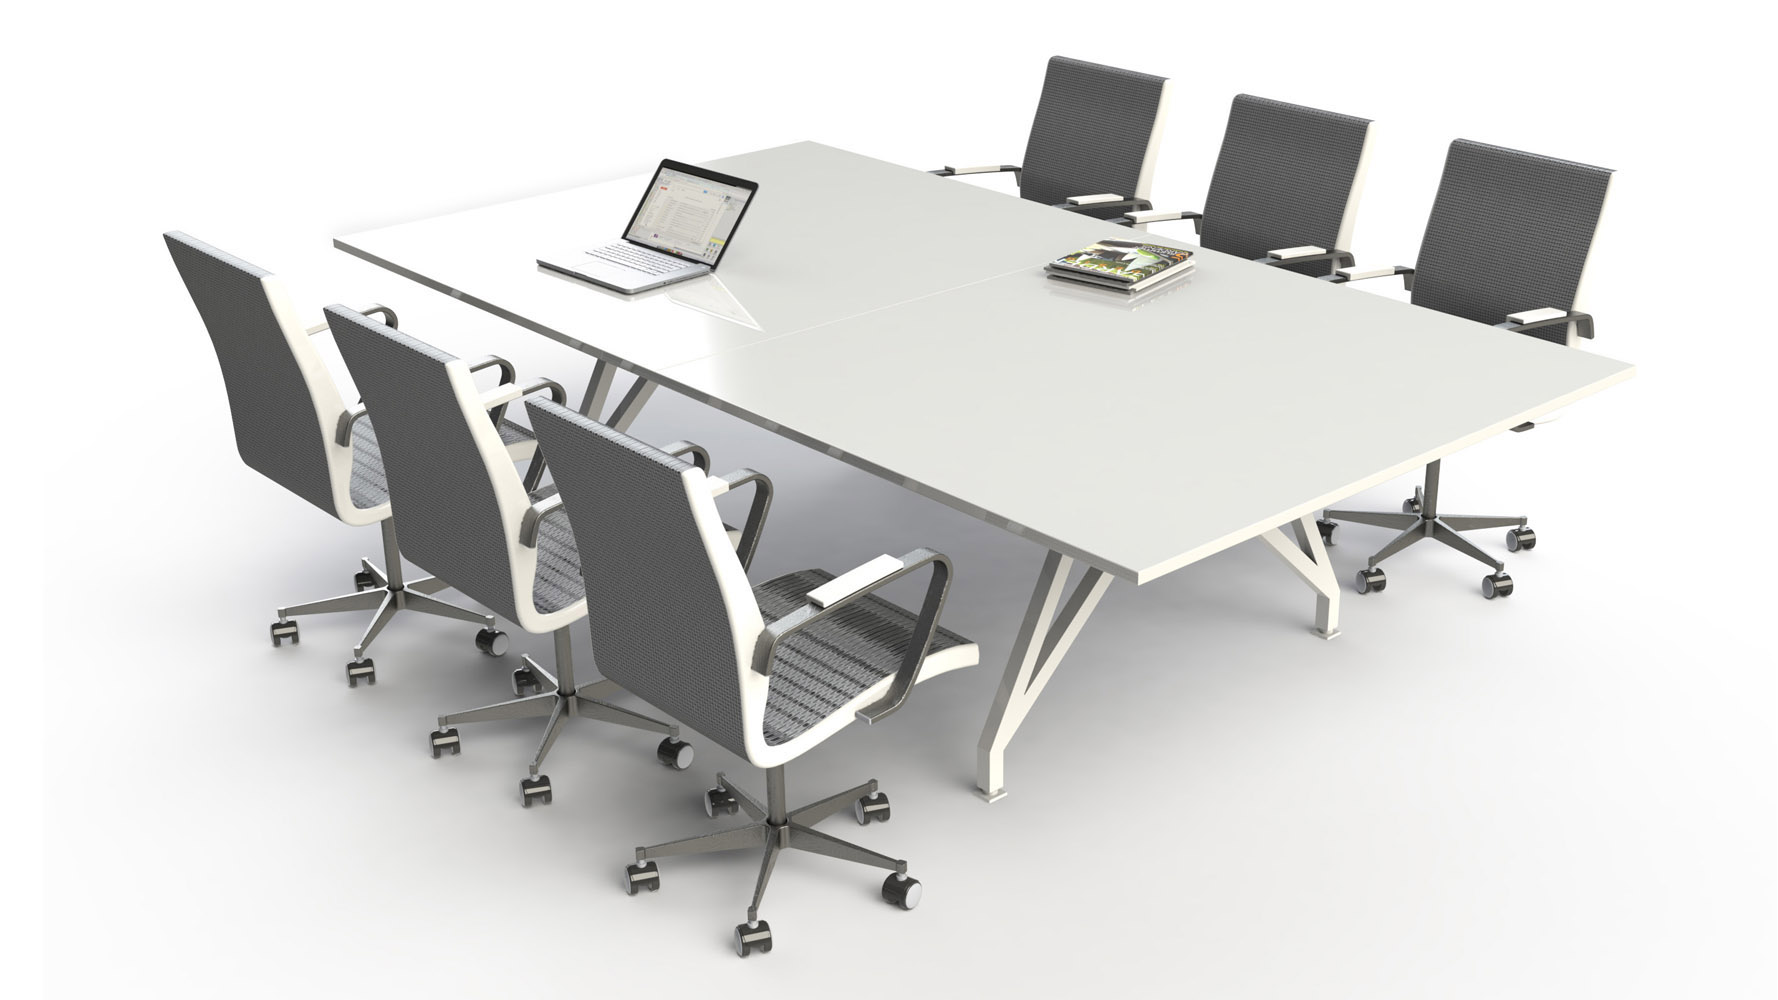 SCALE EYHOV Sport Conference Table Zuri Furniture - Large white conference table